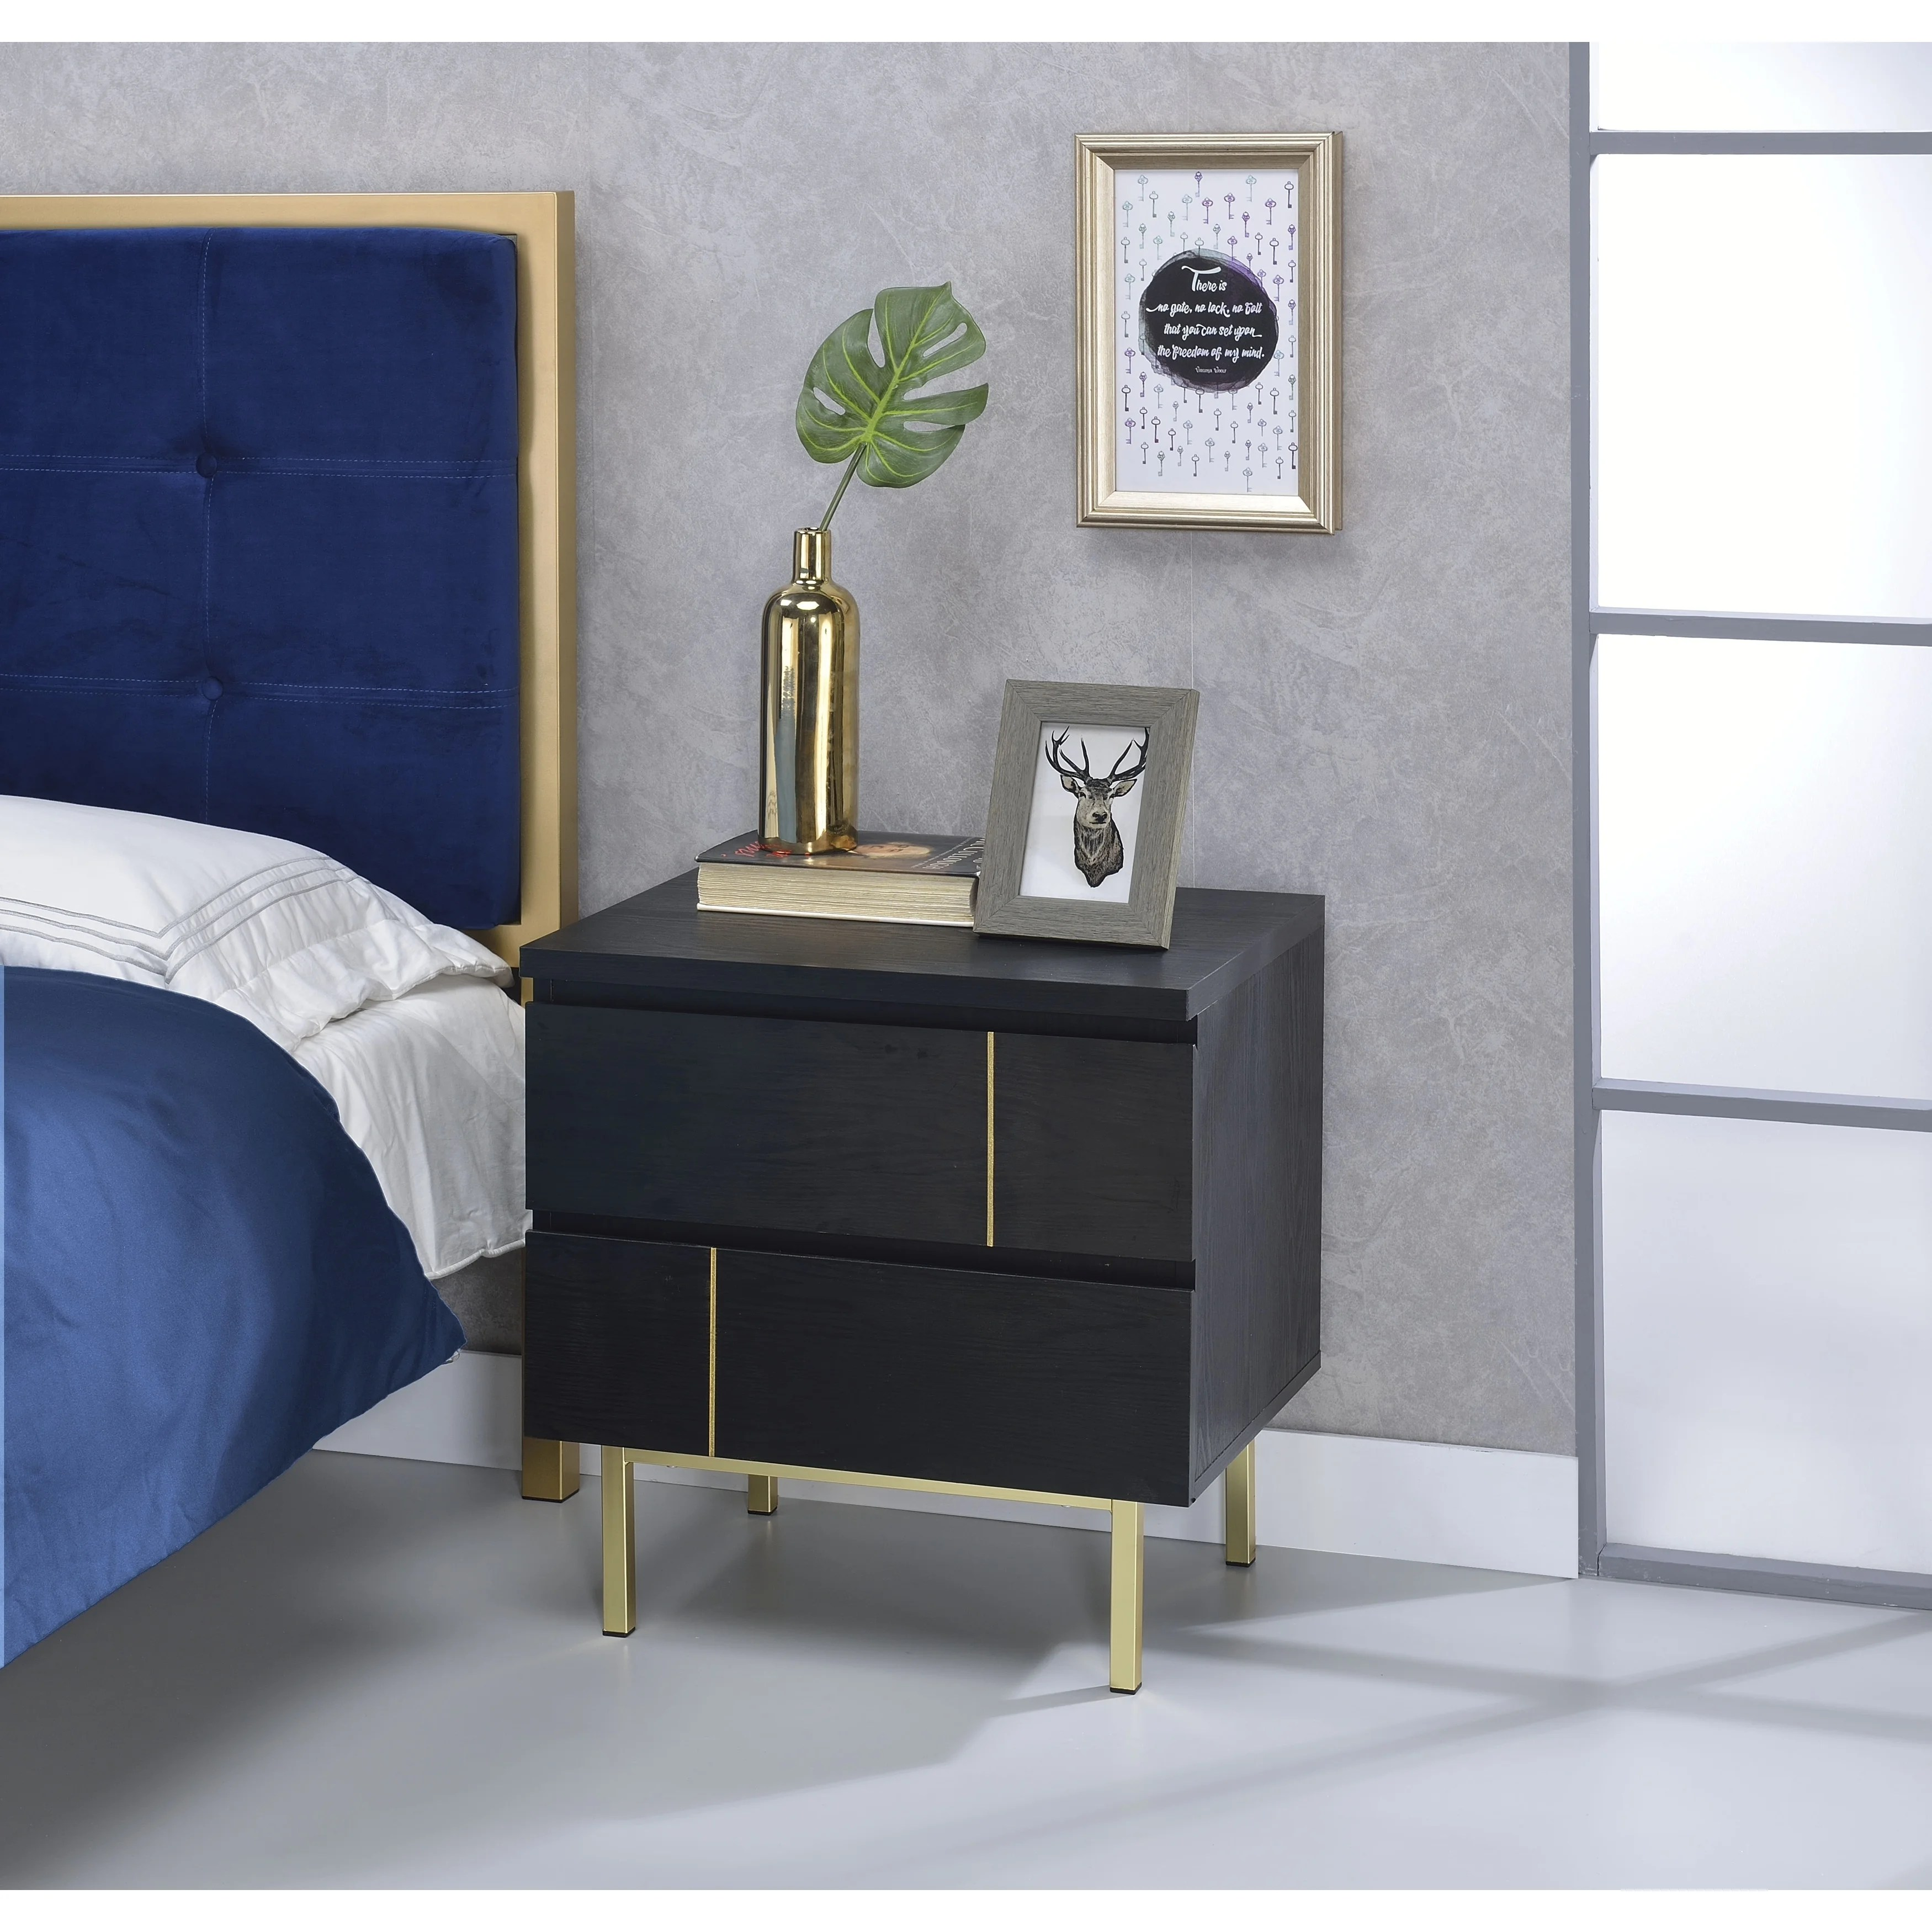 Two Drawers Wooden Nightstand With Metal Block Legs Black Gold